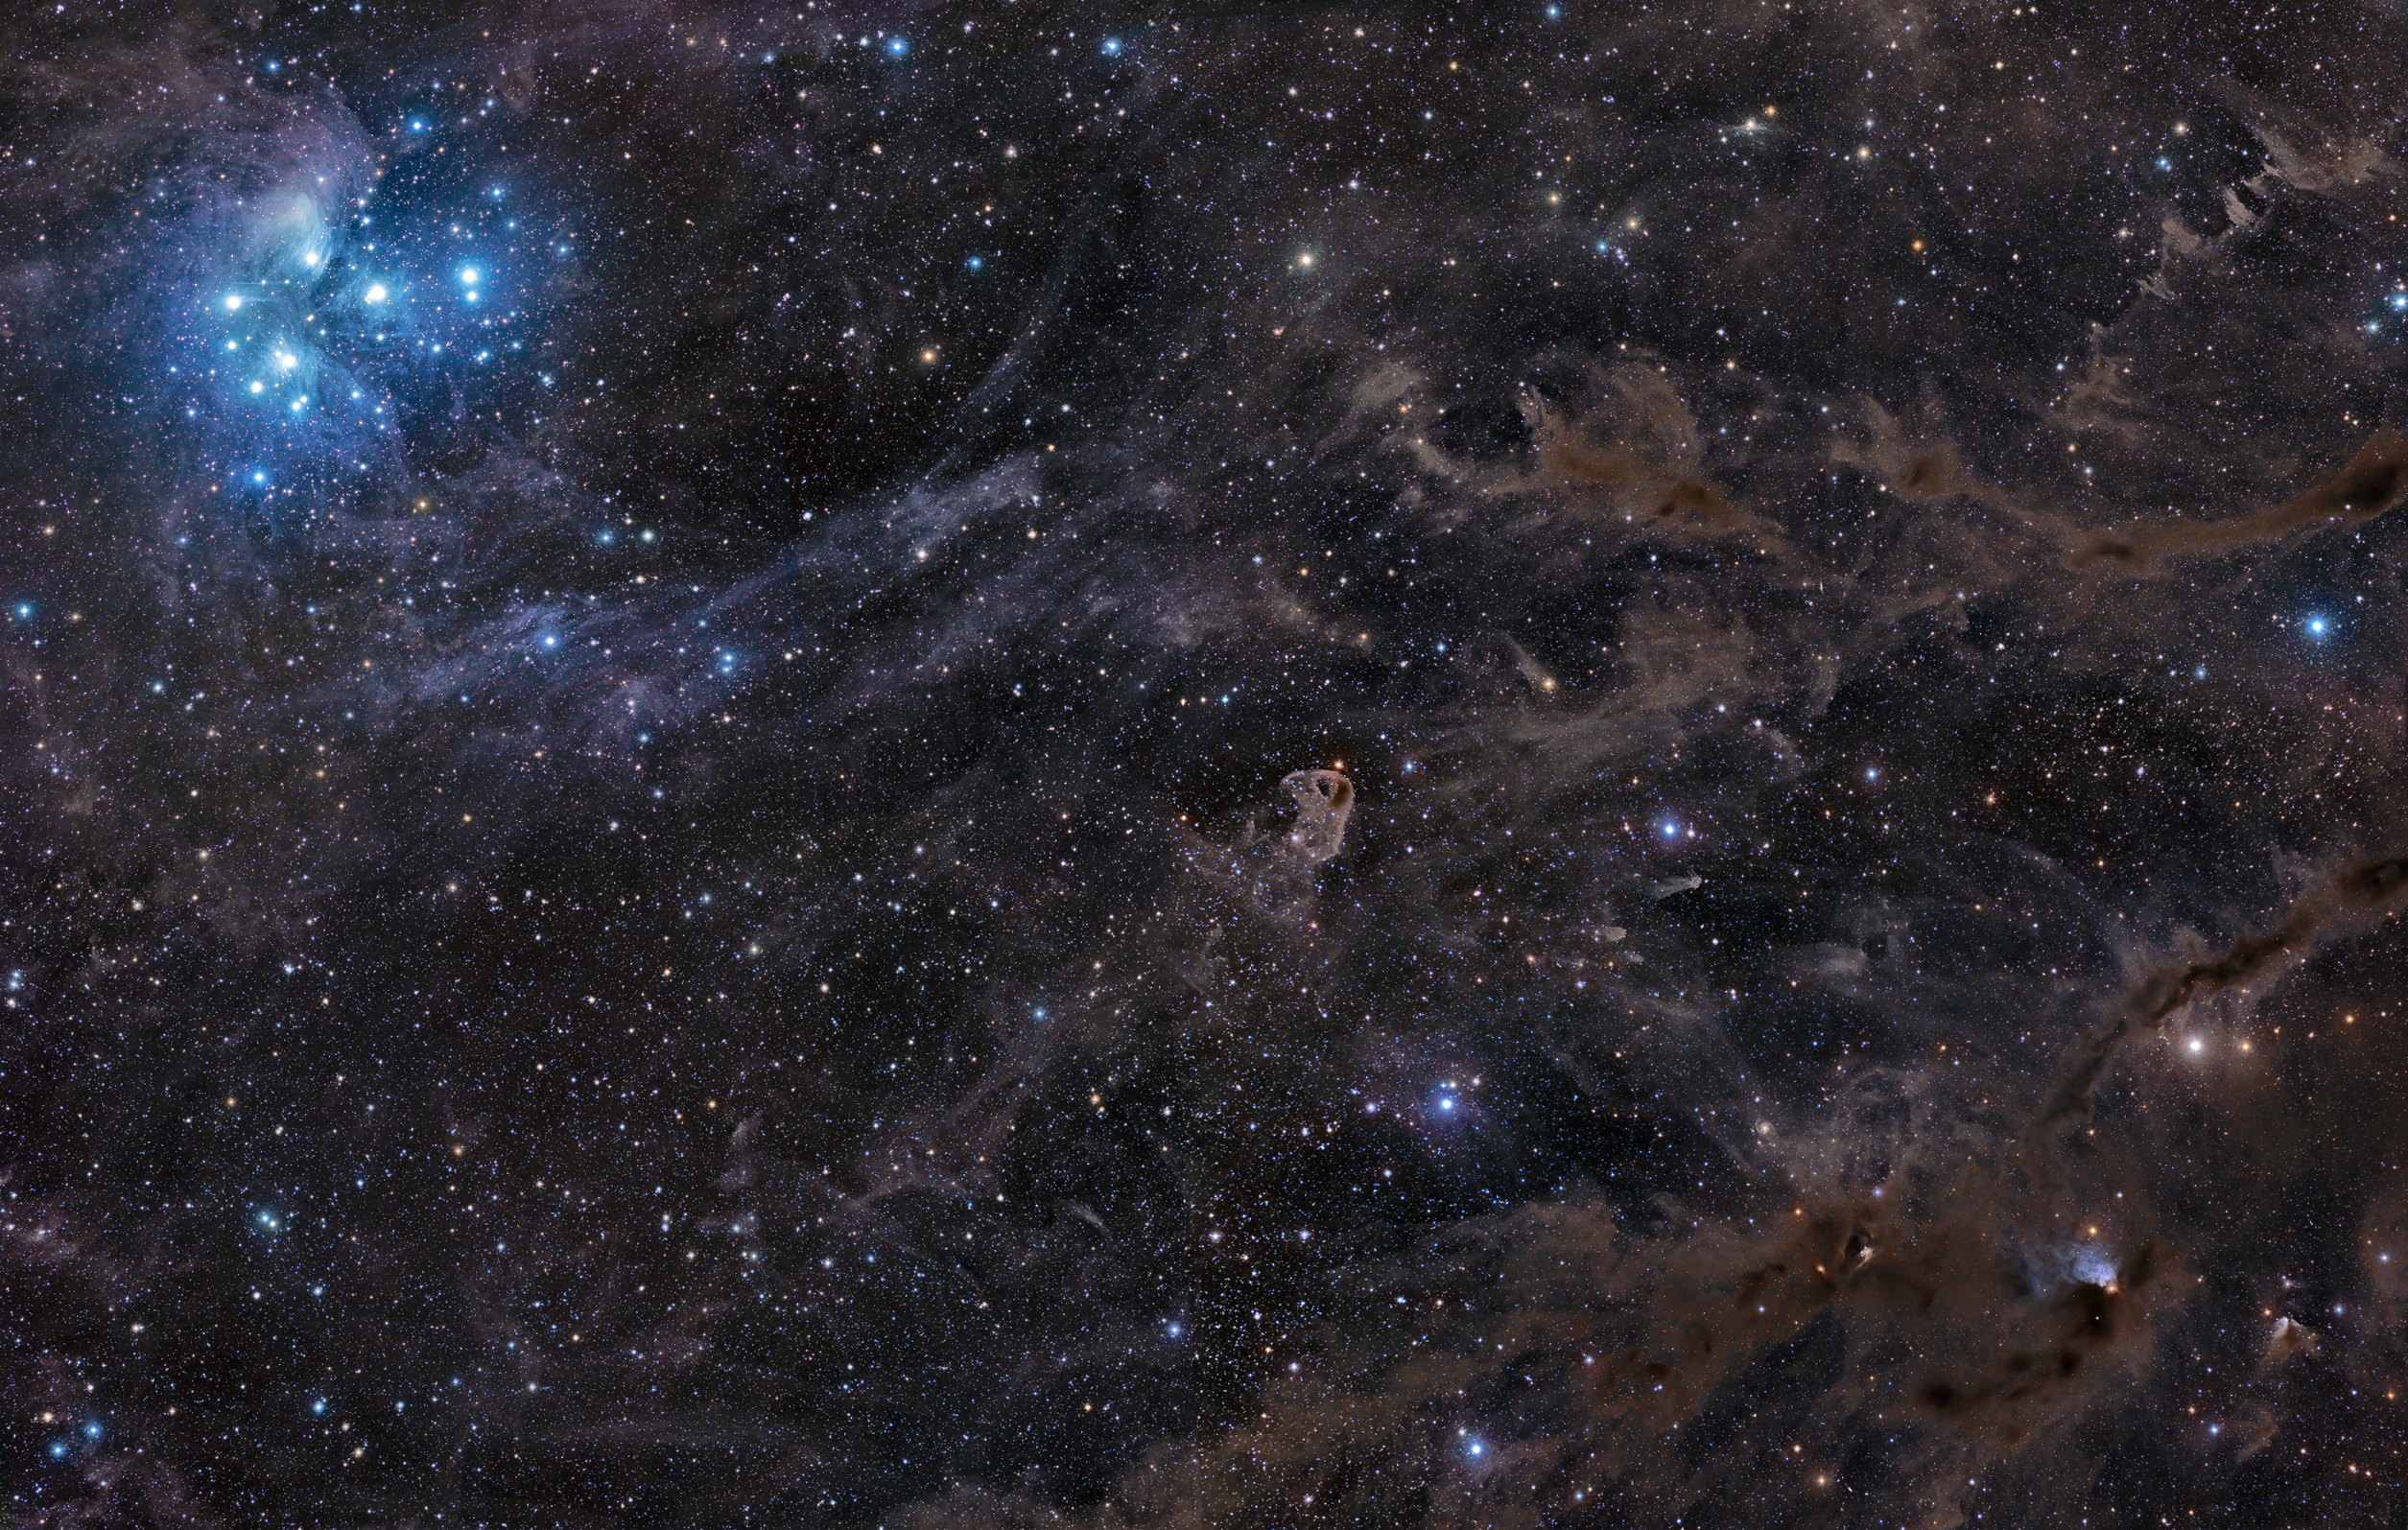 APOD: 2010 November 18 - Sisters of the Dusty Sky